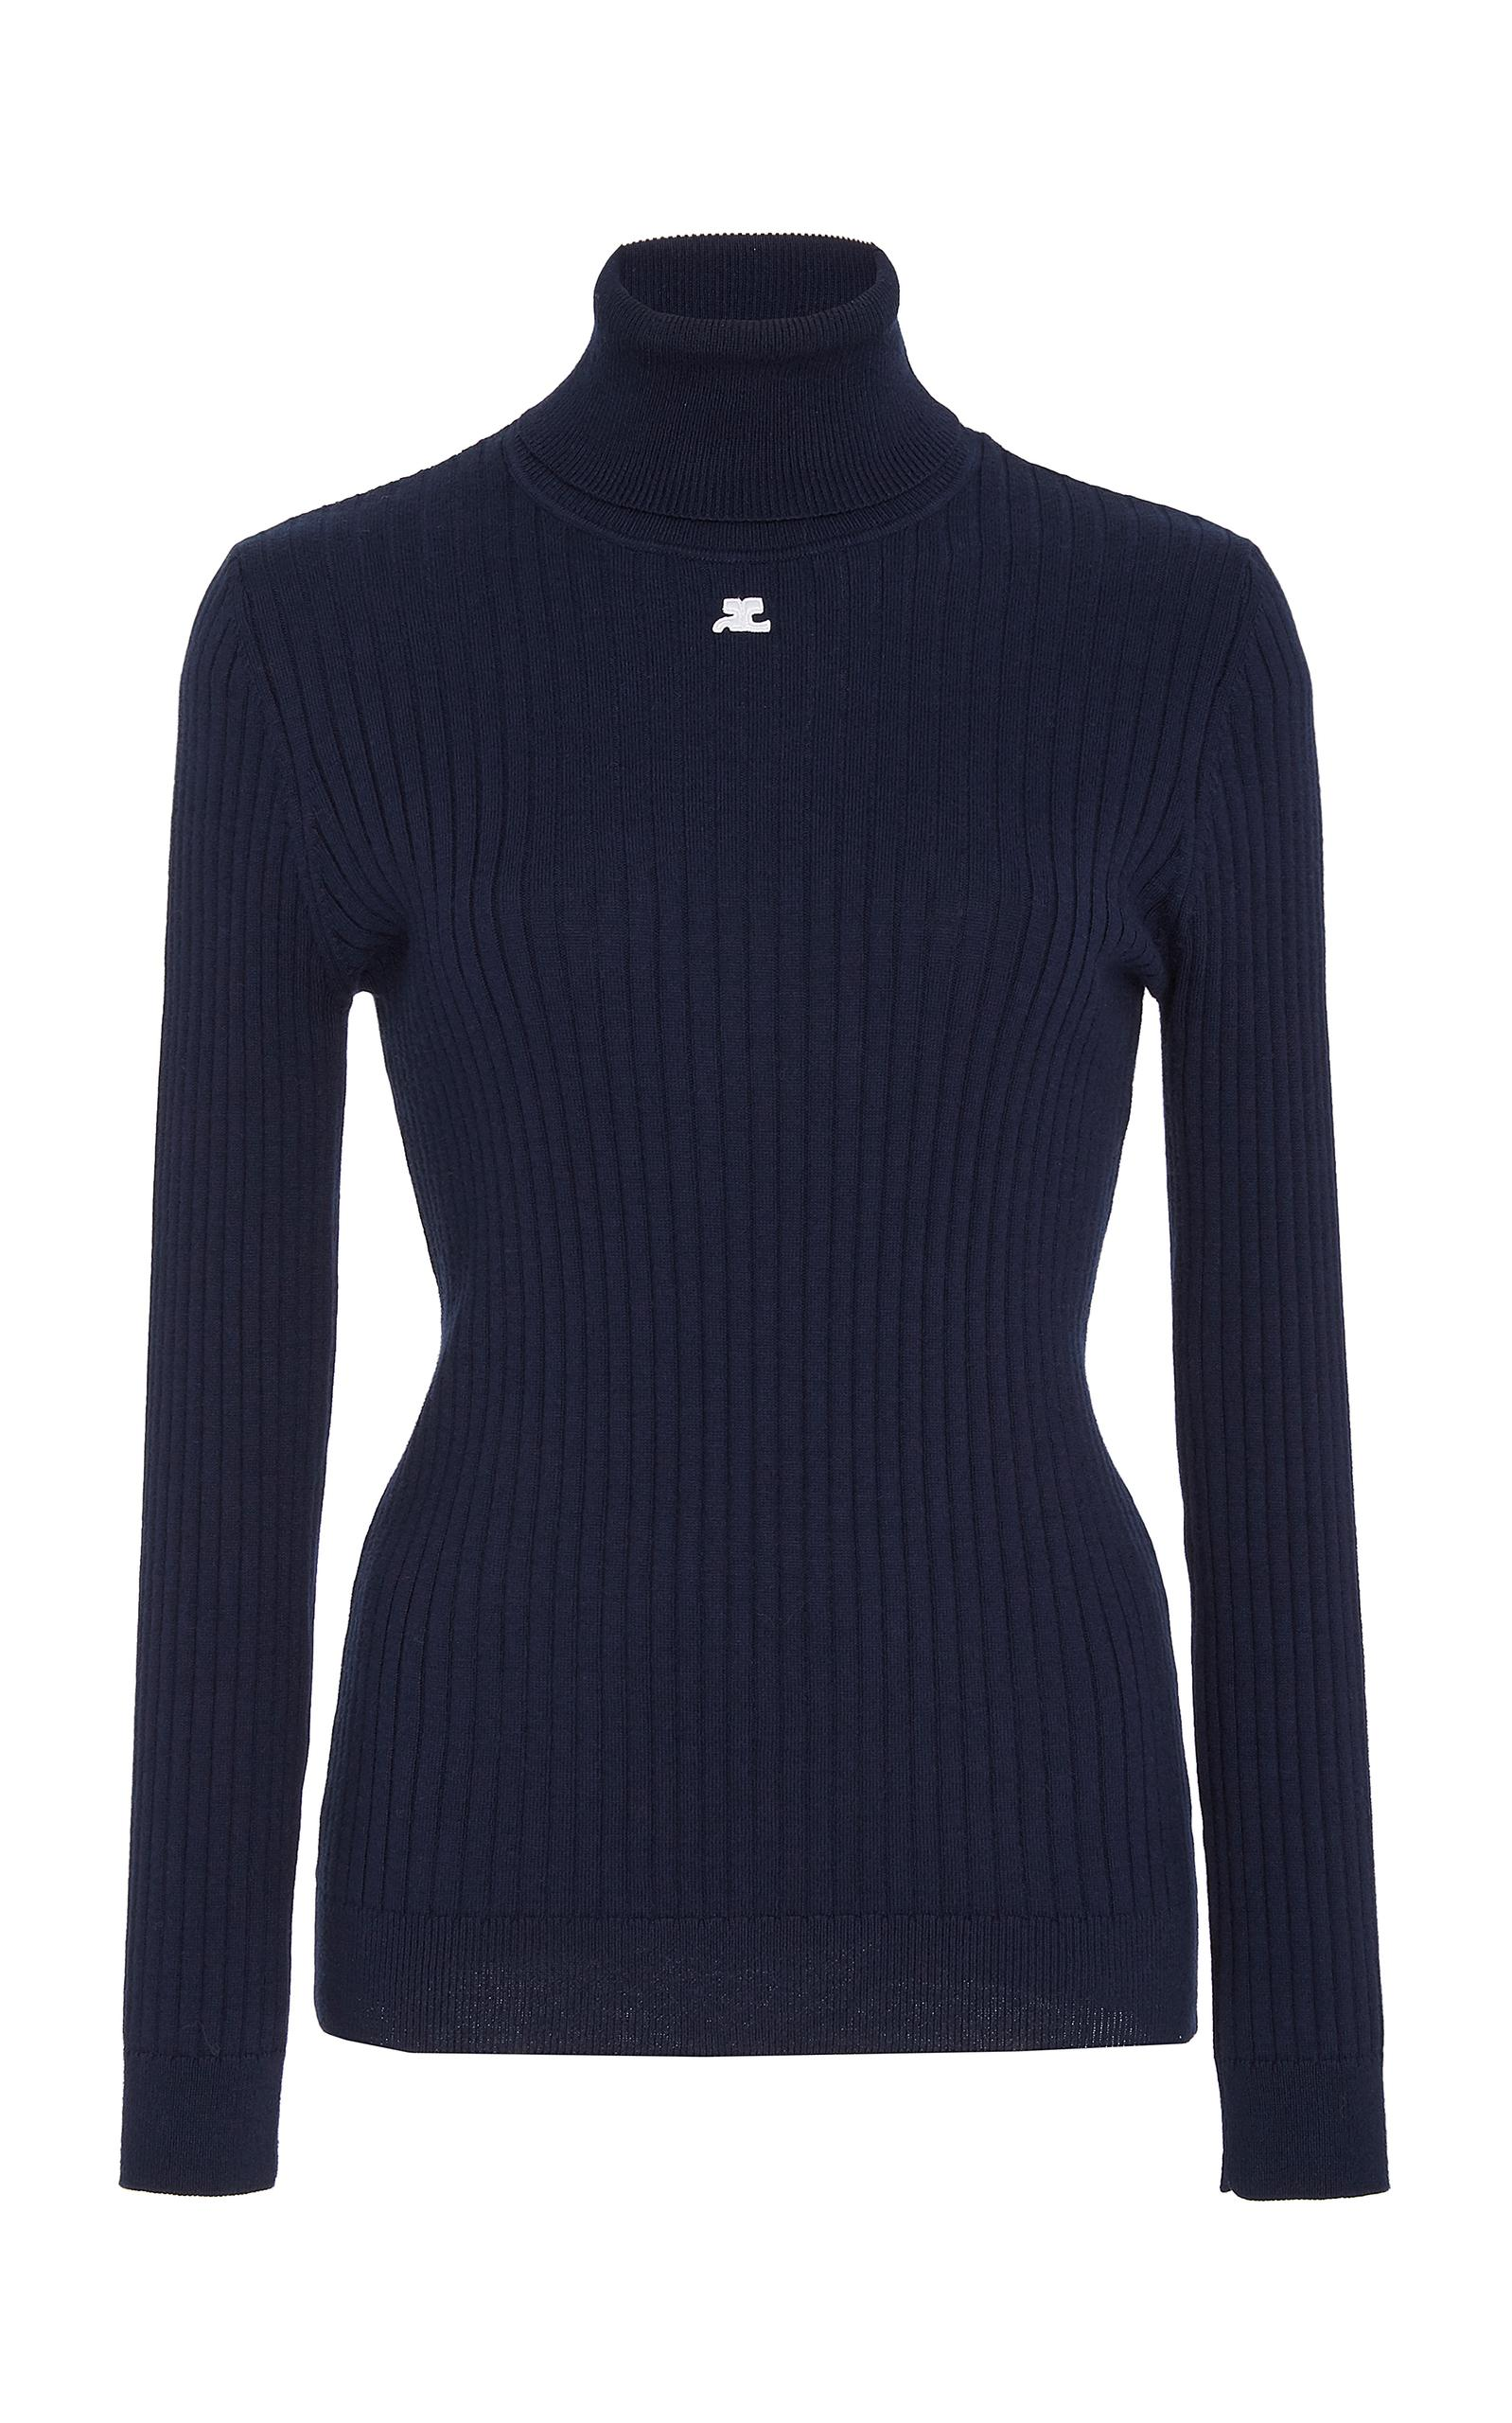 CourrÈGes Cotton And Cashmere-Blend Sweater In Blue